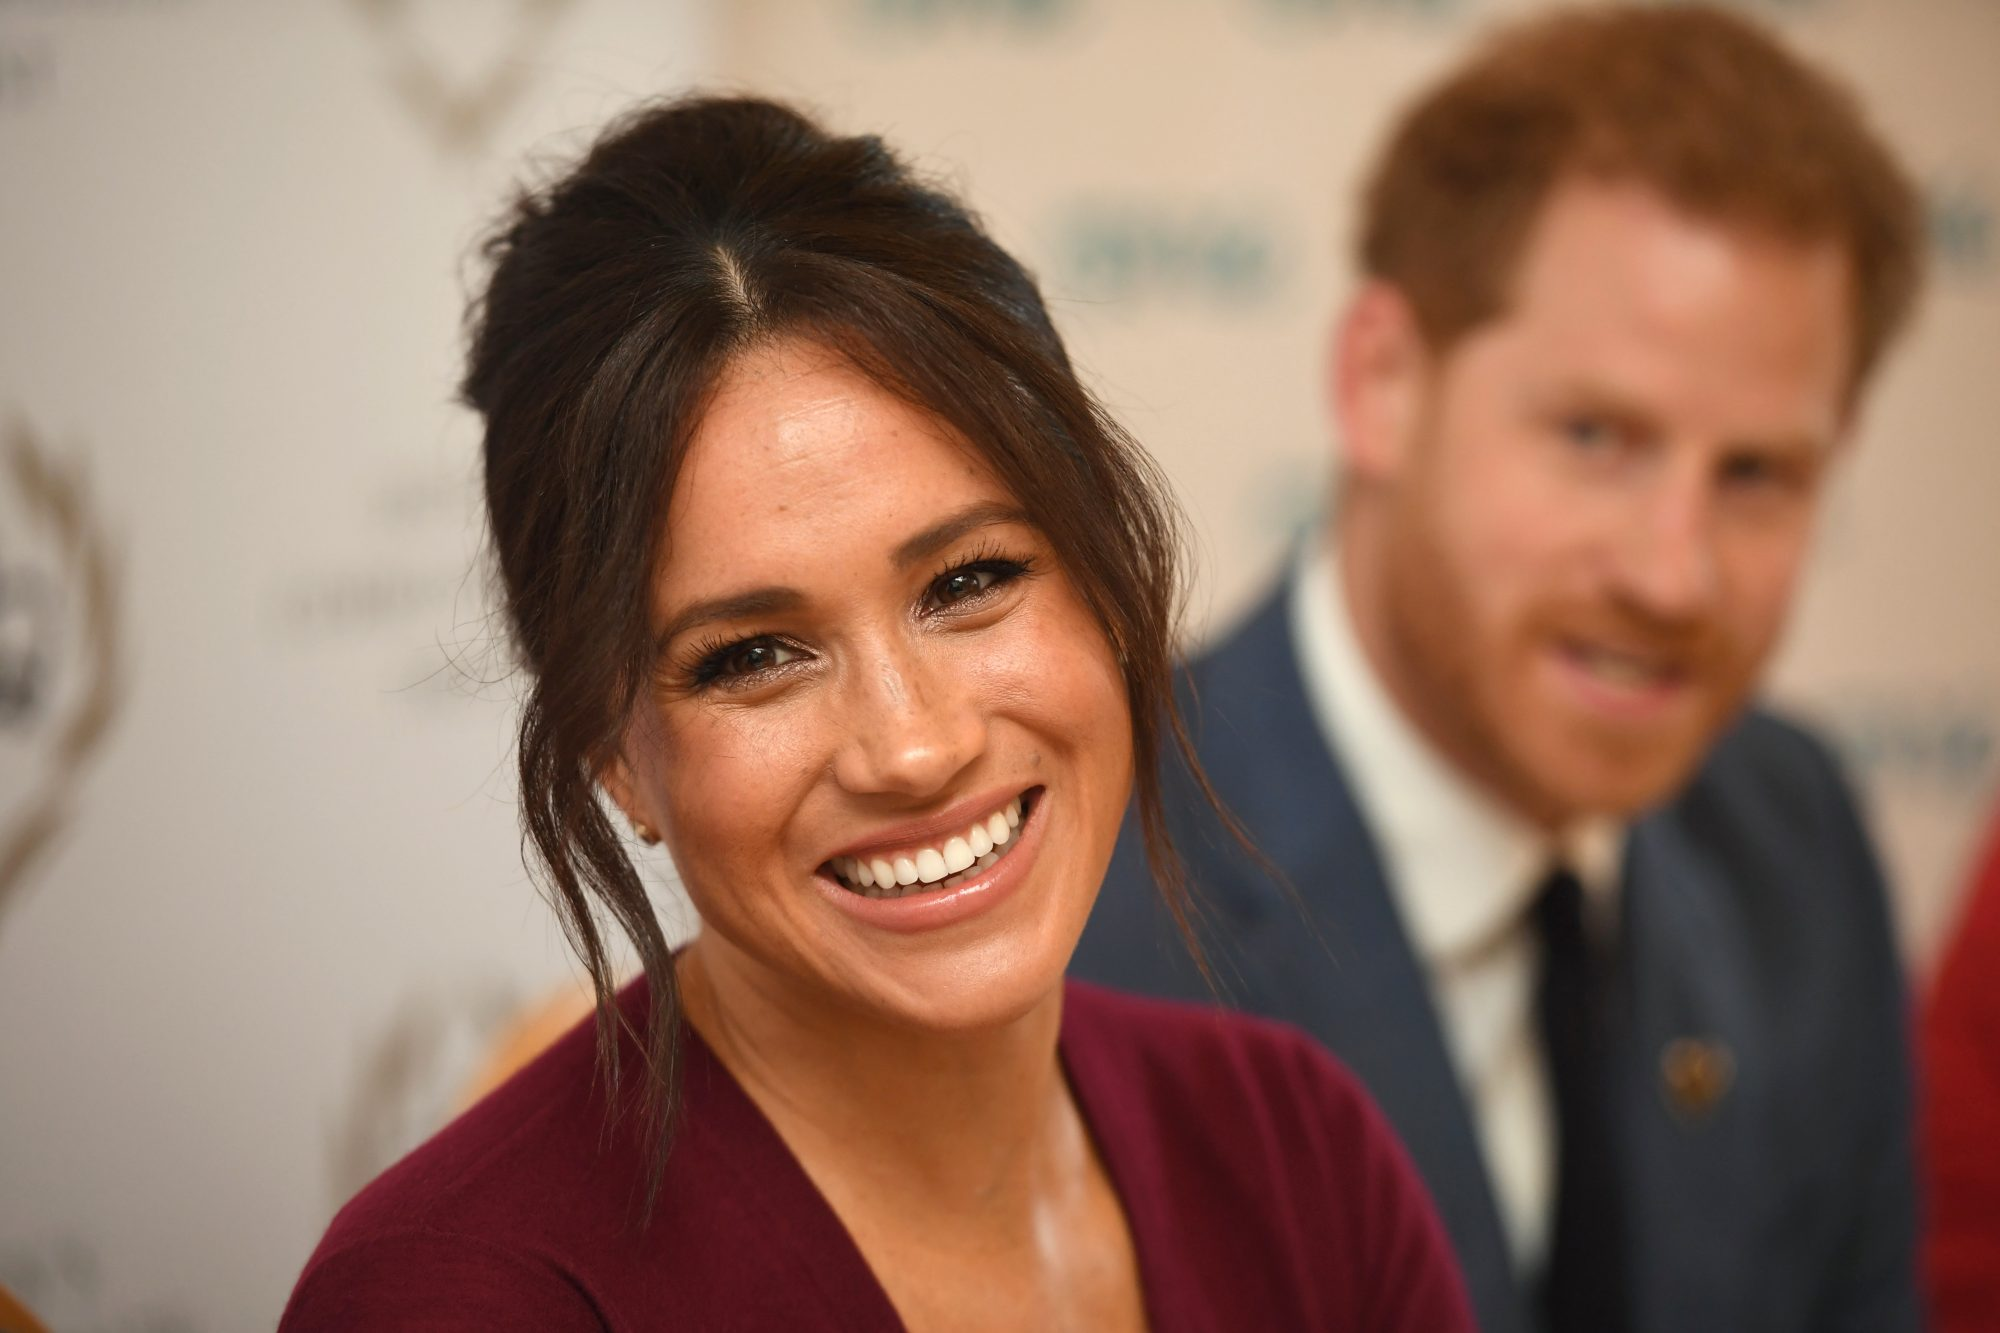 meghan markle duchess of sussex smile